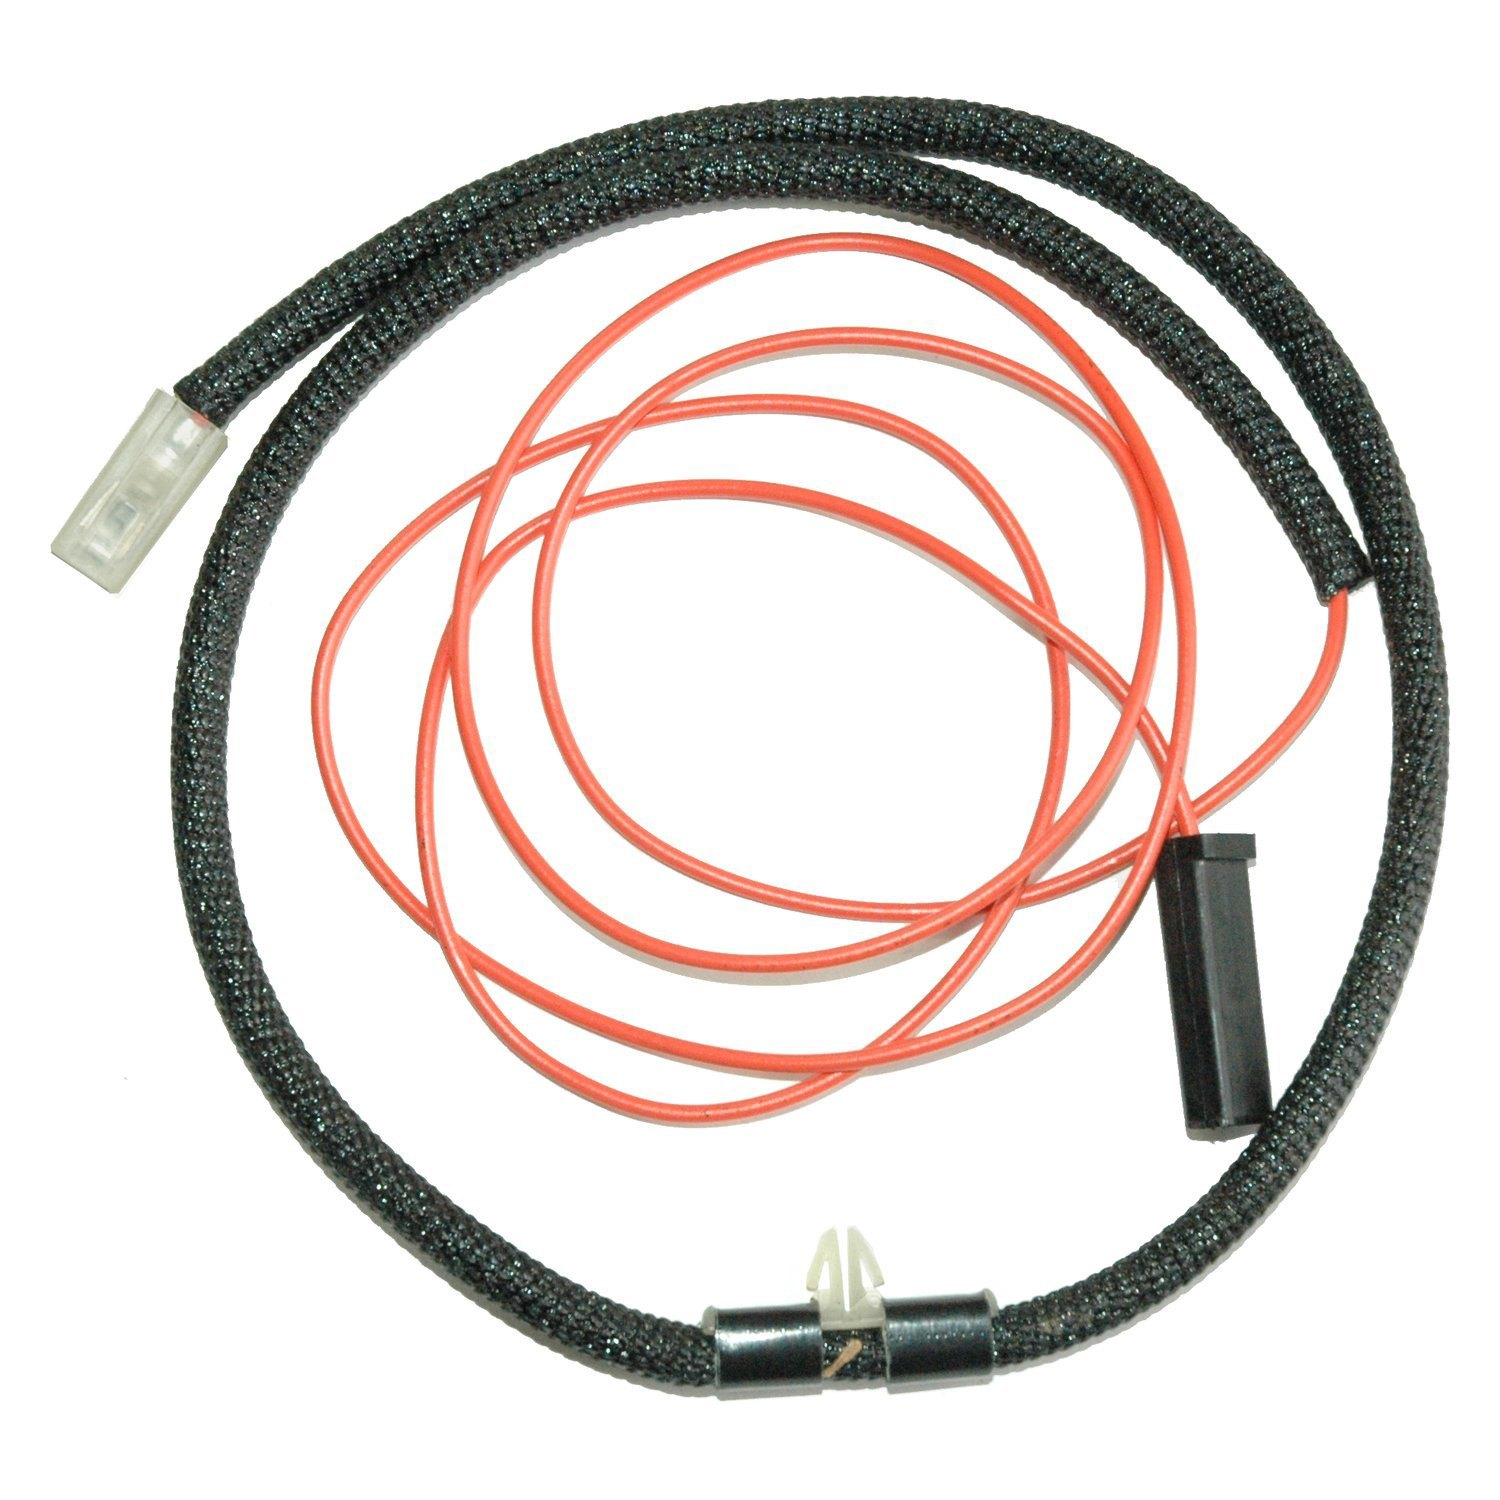 90429 lectric limited® trunk light extension wiring harness